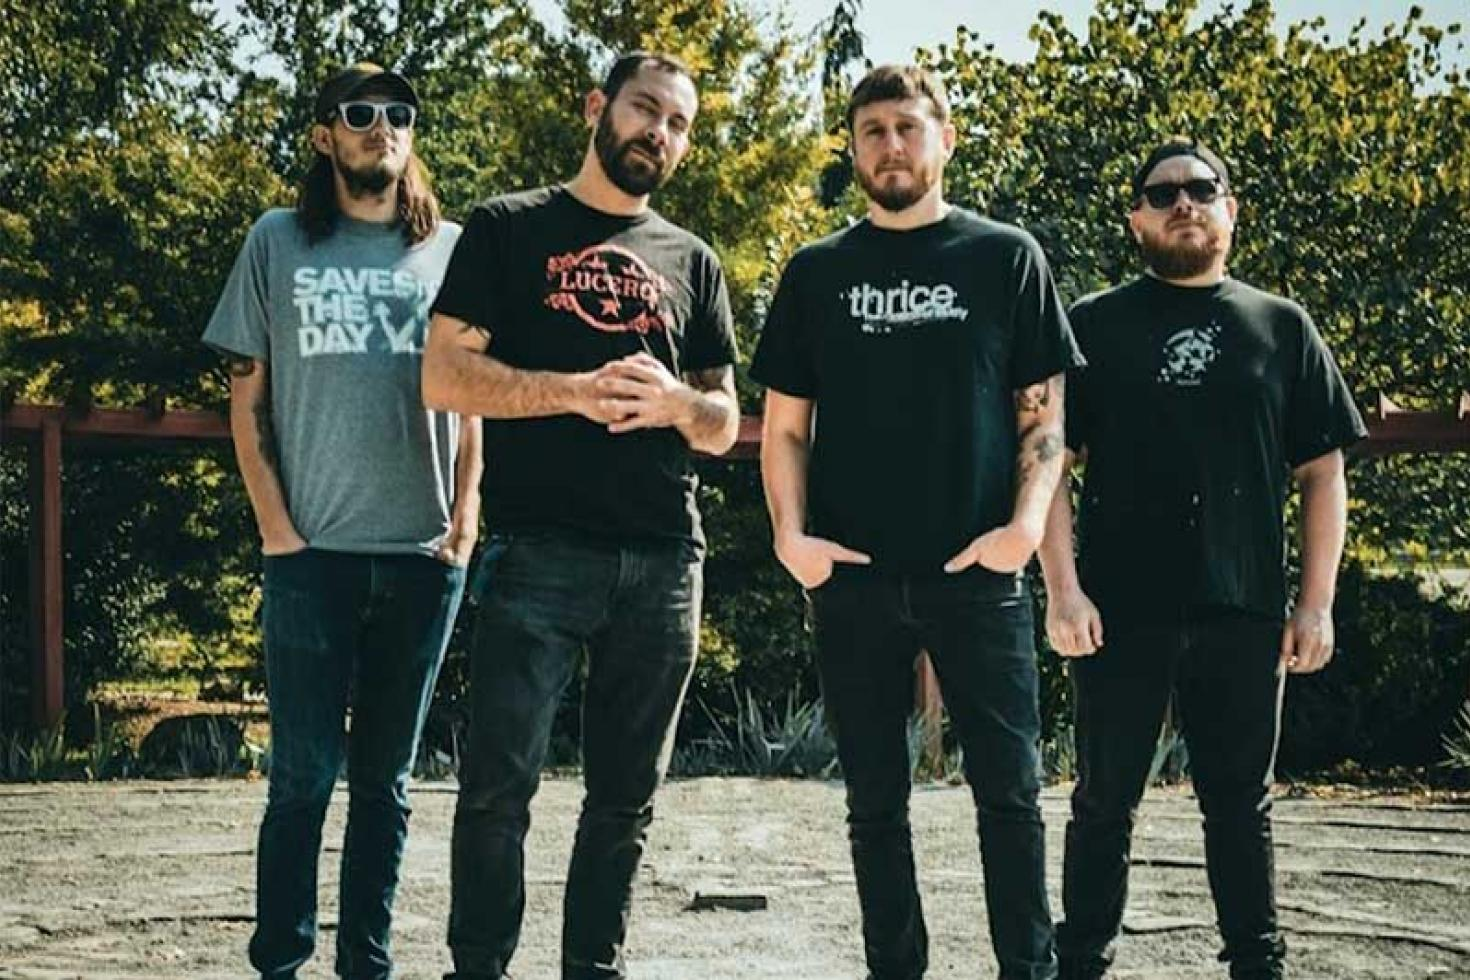 Knoxville's Rough Dreams pays tribute to Thrice with cover of 'The Artist in the Ambulance'